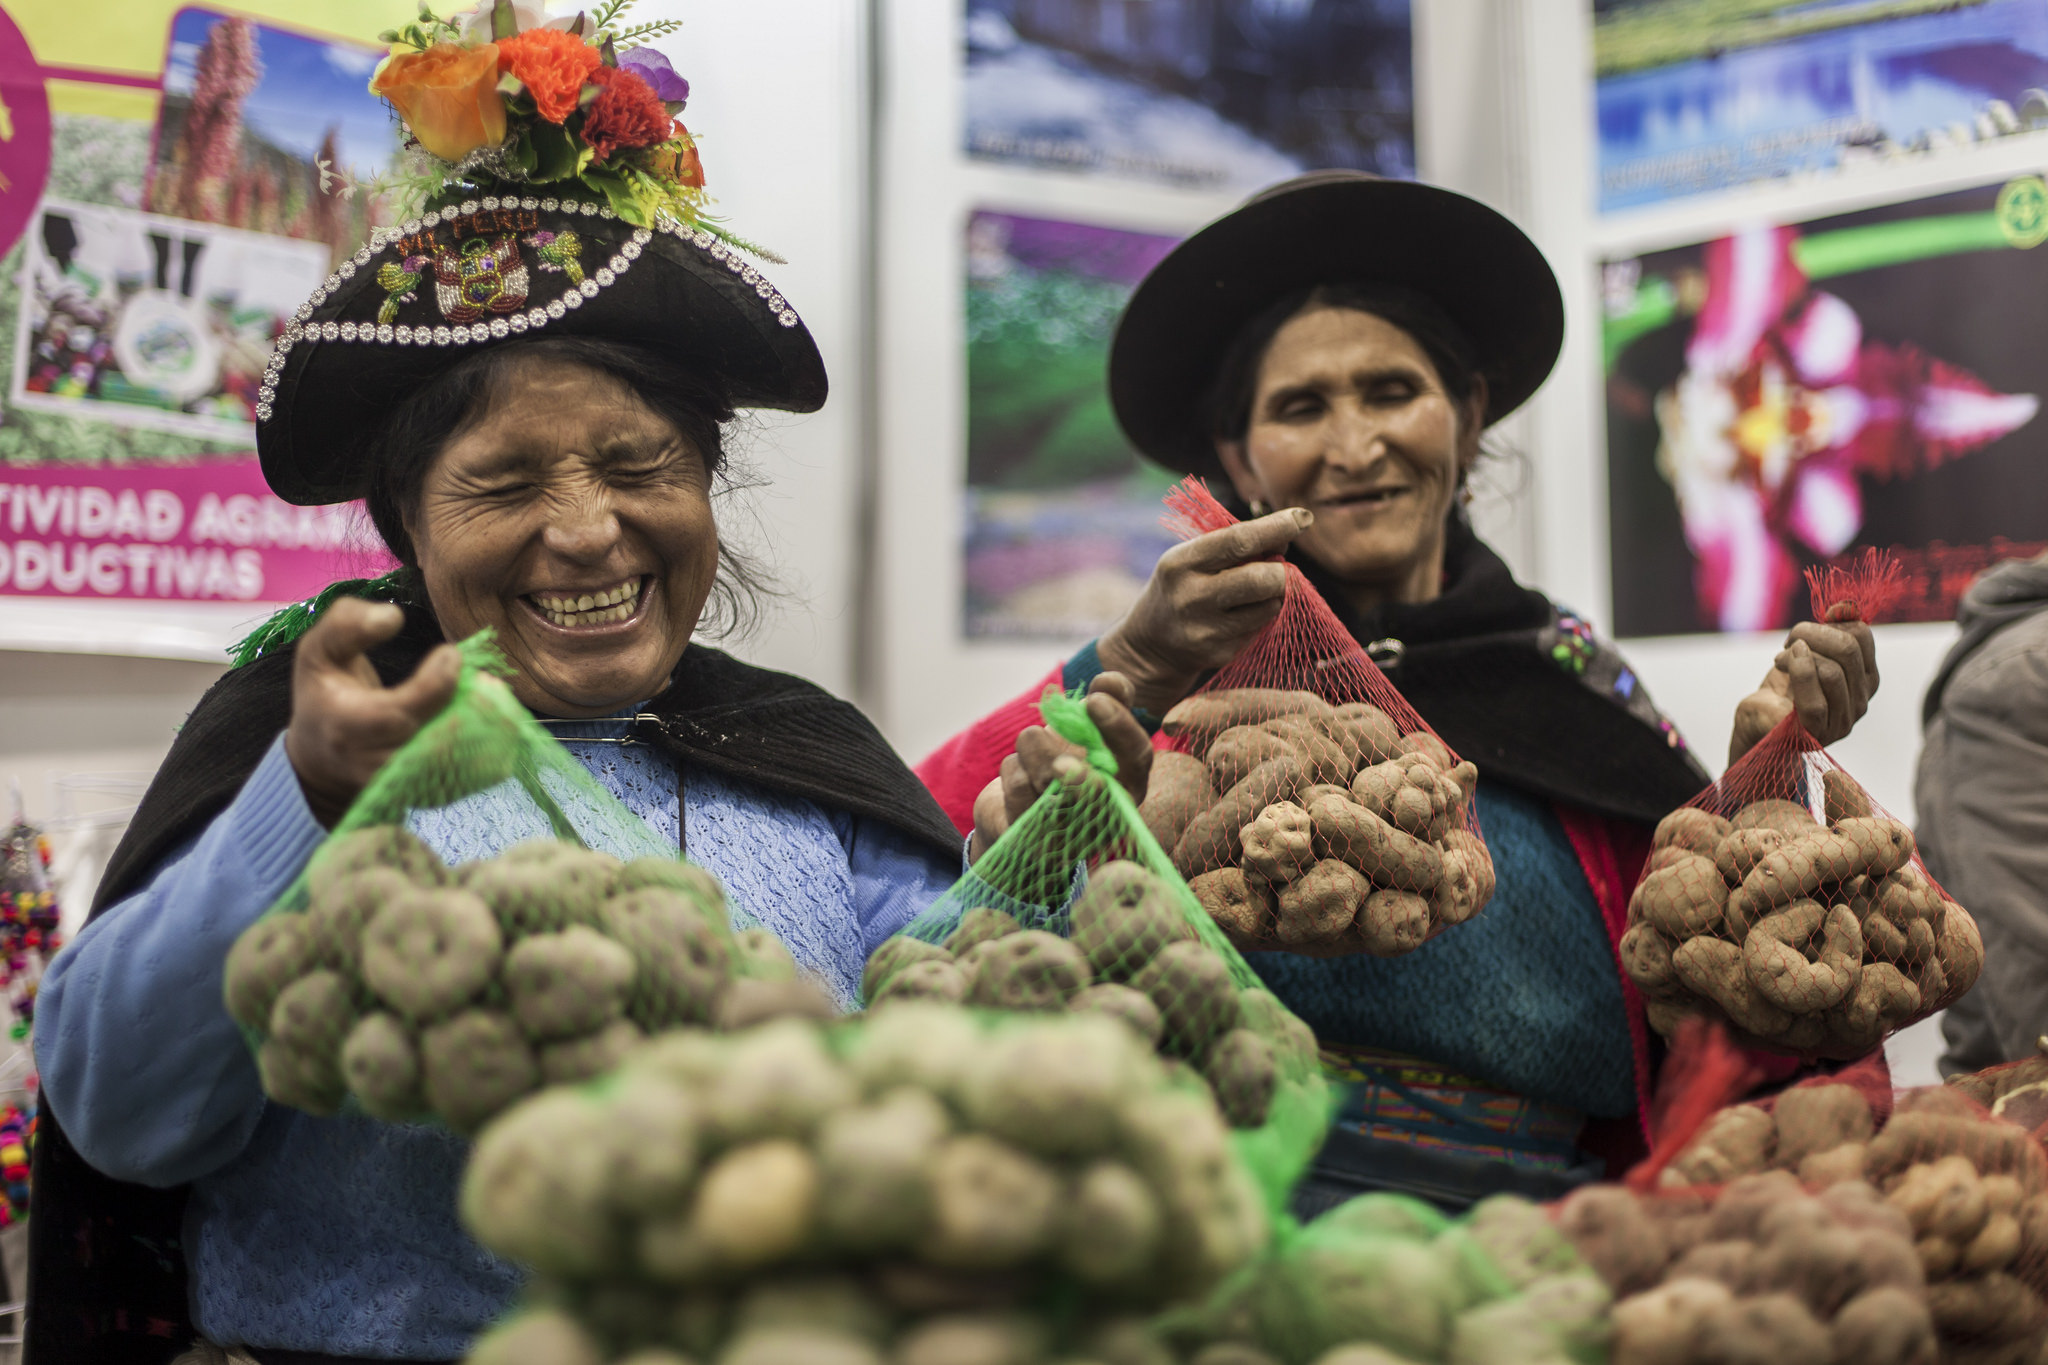 Women in traditional hats hold up bags of Andean potatoes